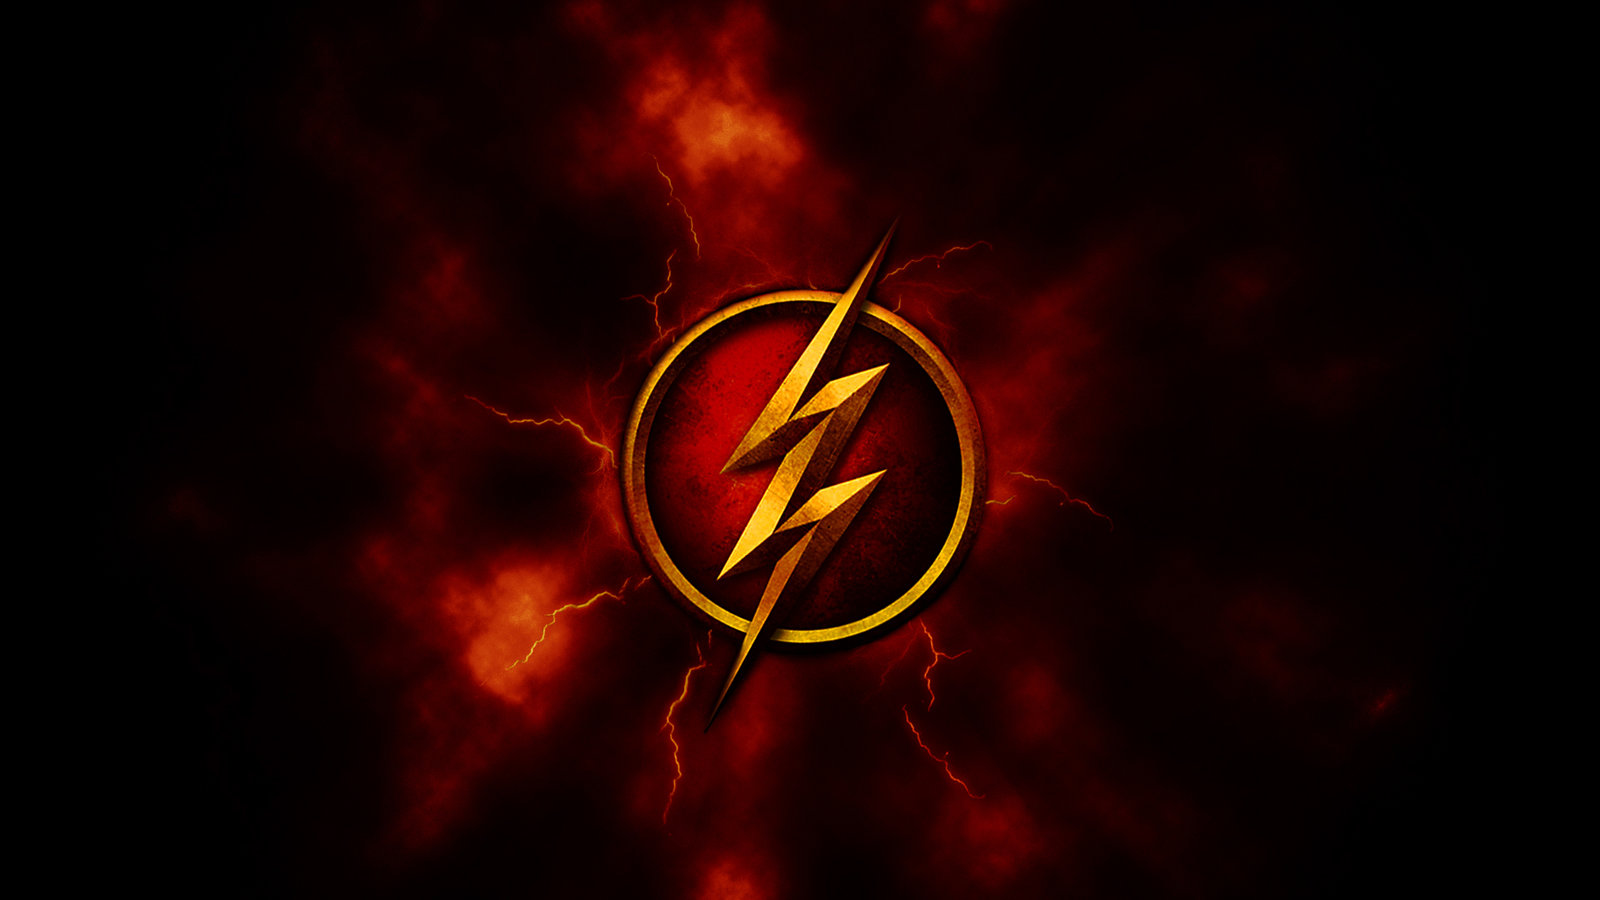 The Flash Hd Wallpaper Wallpapersafari